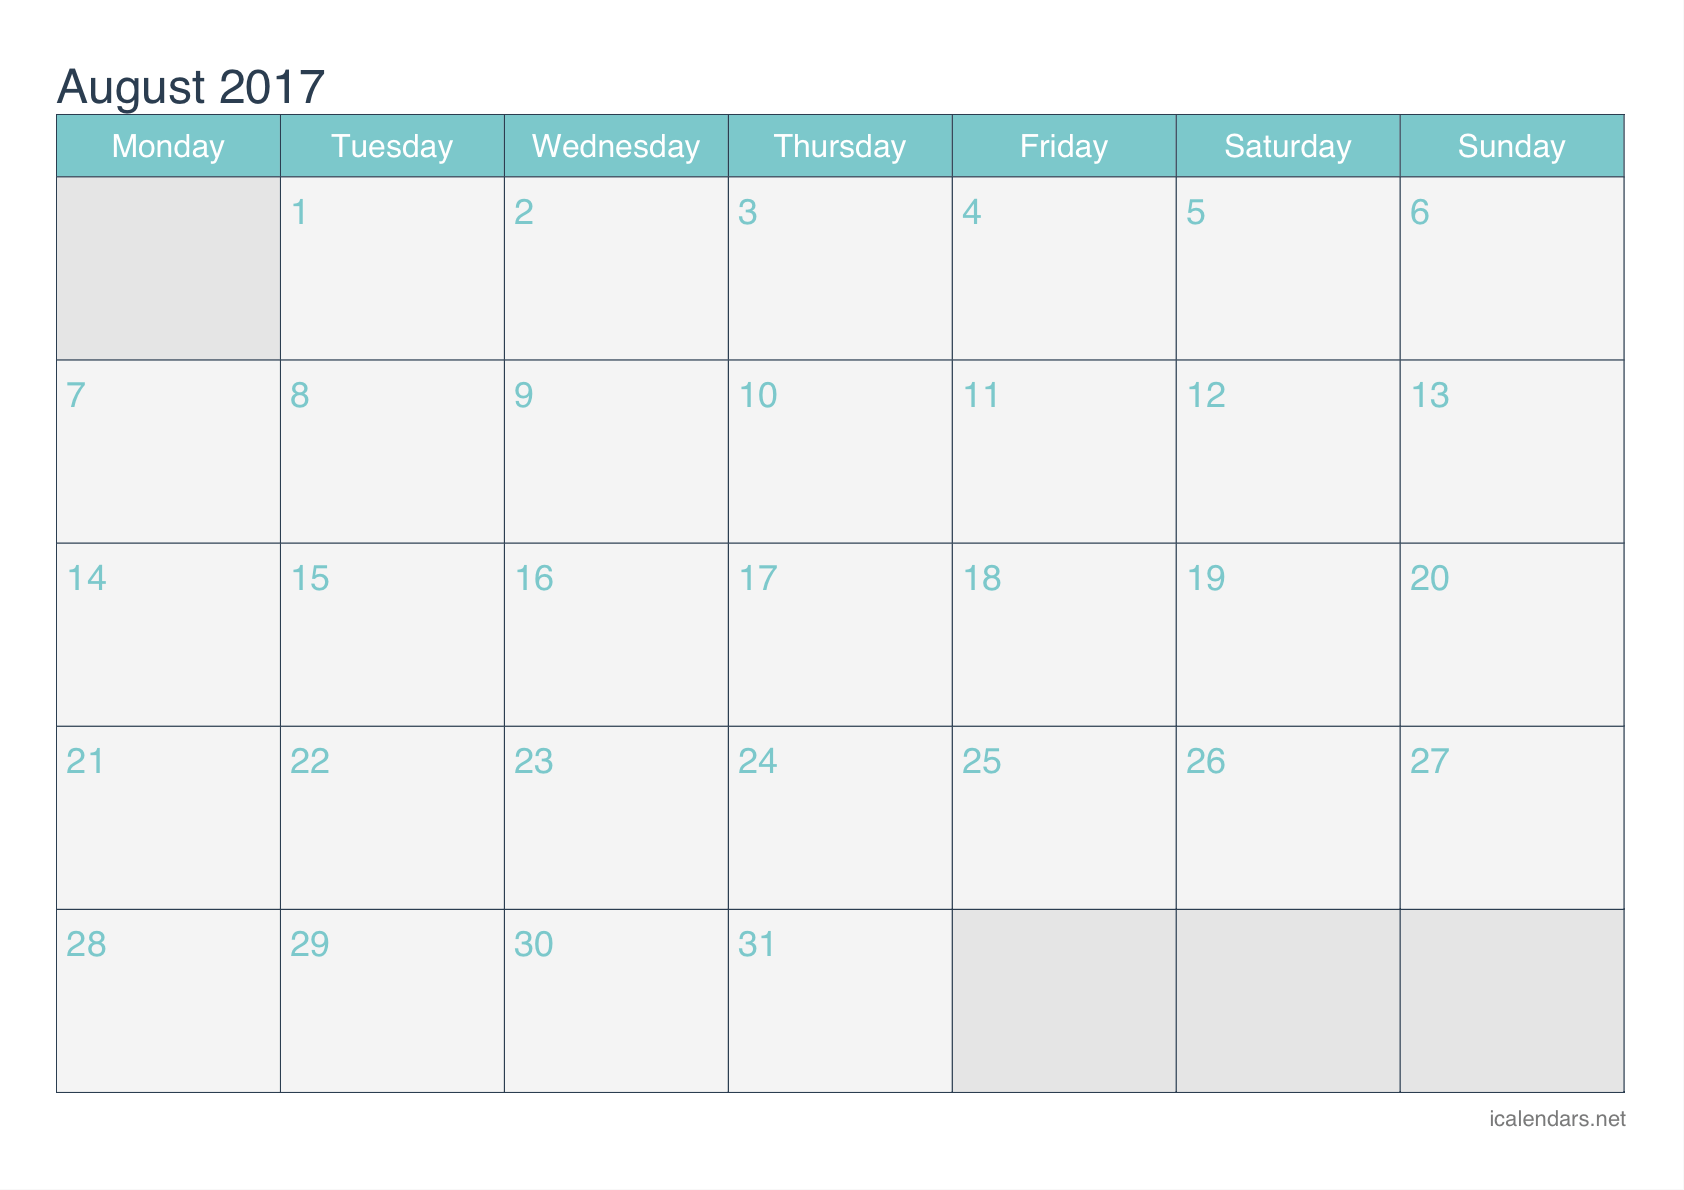 August 2017 Printable Calendar - icalendars.net